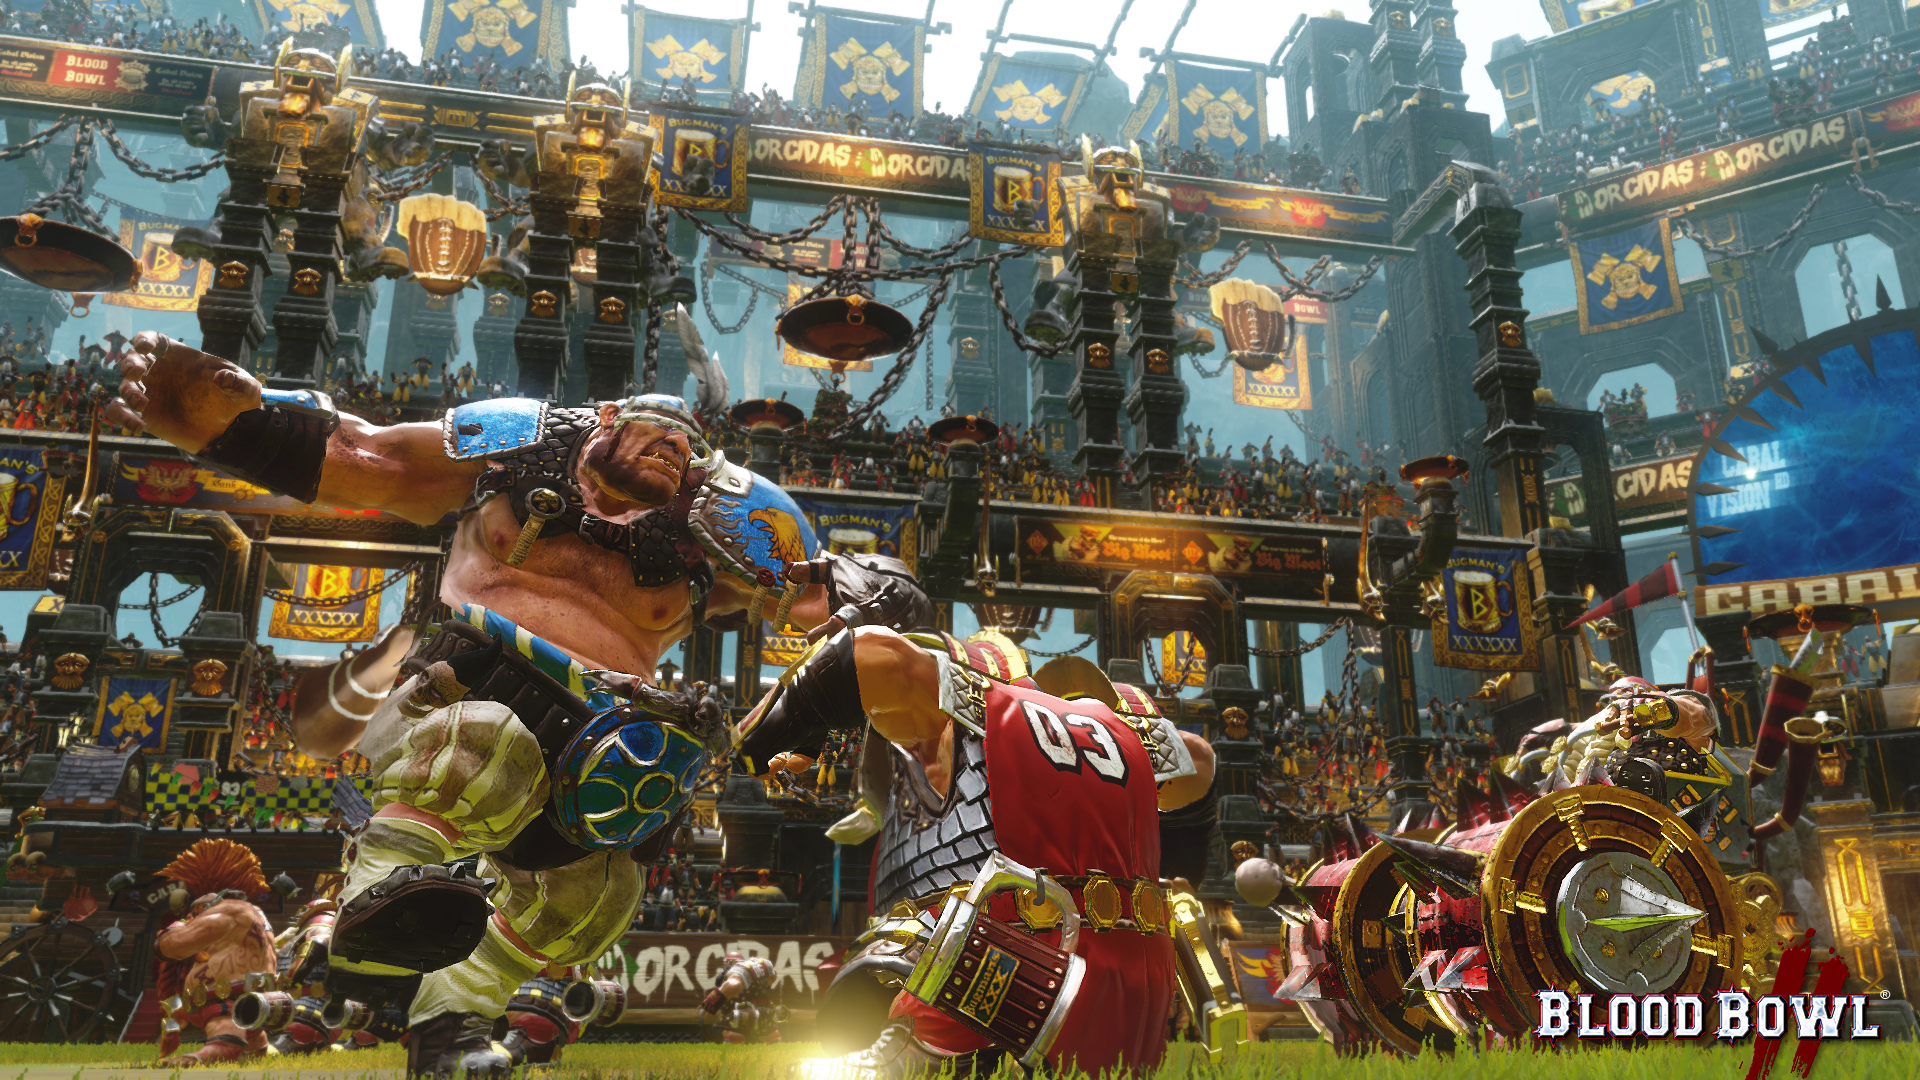 New Blood Bowl 2 Gameplay Trailer Puts The Spotlight On The Dark Elves